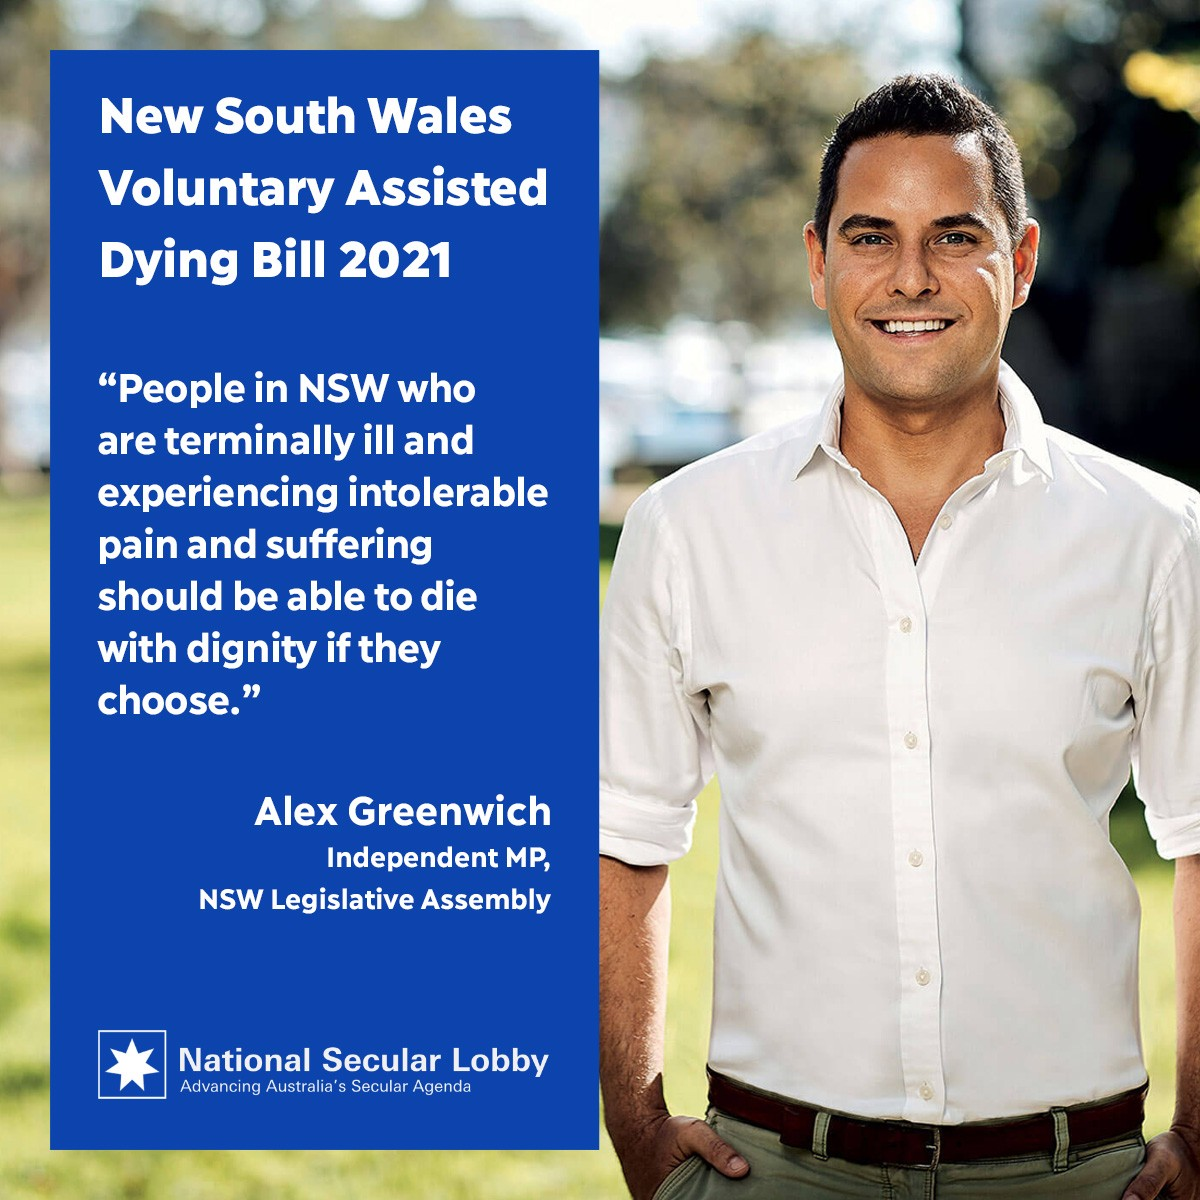 Alex greenwich on the NSW Voluntary Assisted Dying Bill 2021